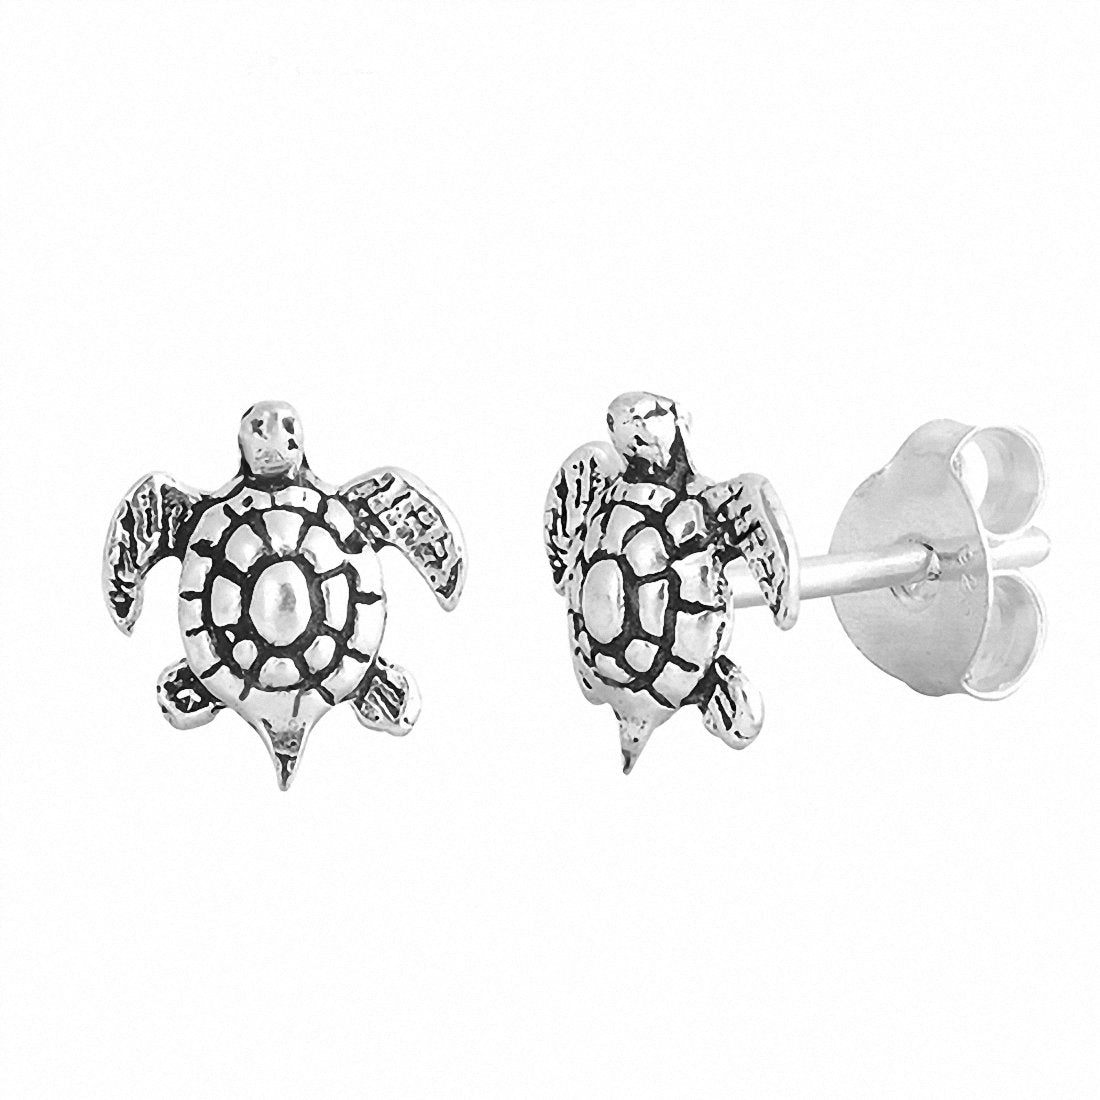 Tiny Turtle Stud Earrings 925 Sterling Silver Choose Color